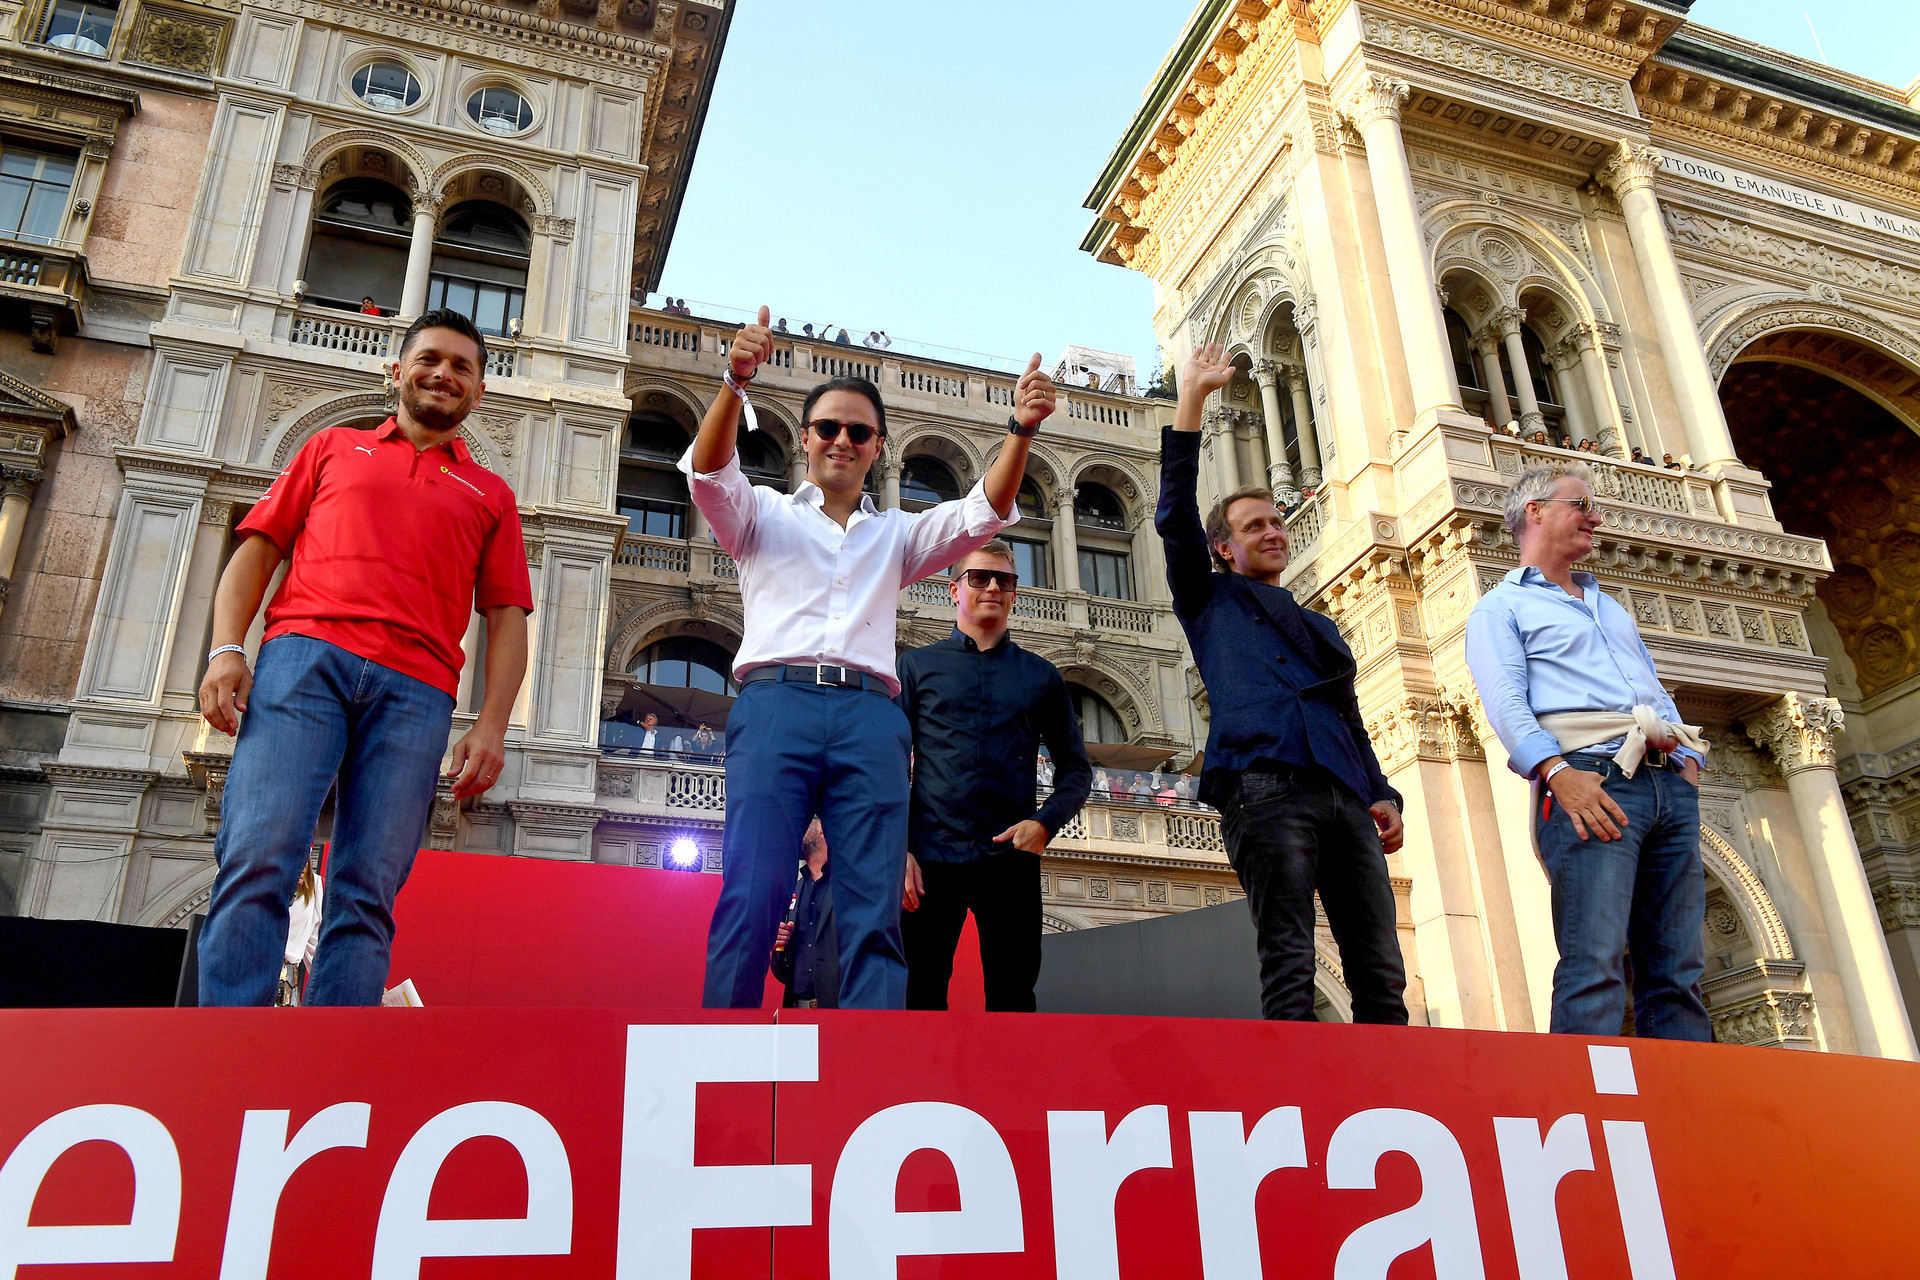 2019 Ferrari 90 Years celebration at Milan | 4 Sept 2019 website 14.jpg